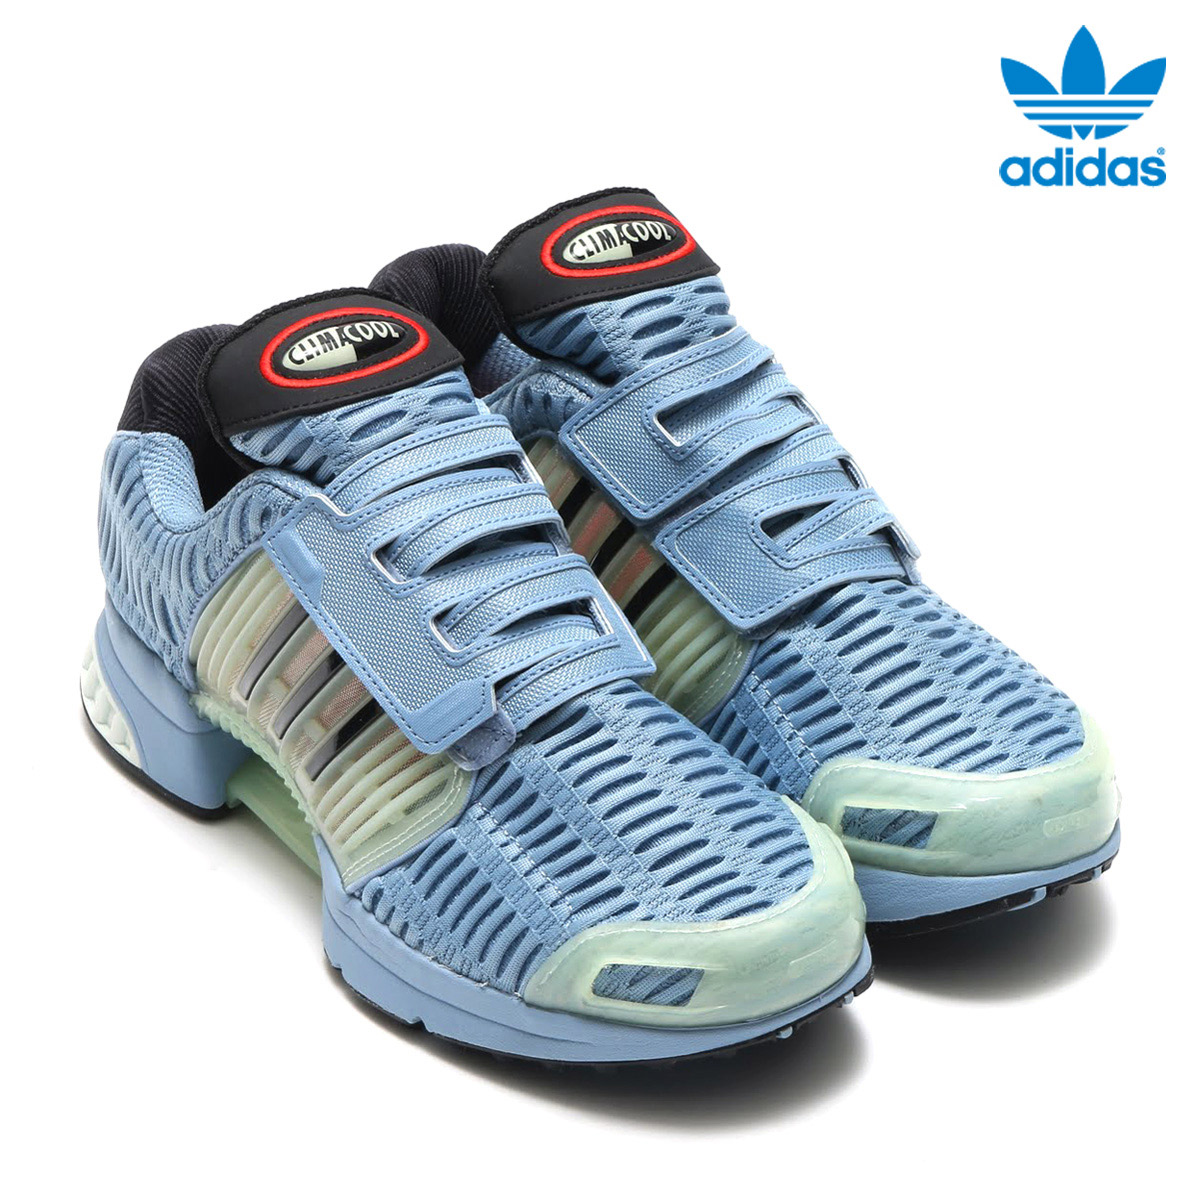 huge discount e0052 eab71 adidas Originals CLIMACOOL 1 CMF (アディダスオリジナルスクライマクール) (Tactile BlueCore  Blacklinen Blue)